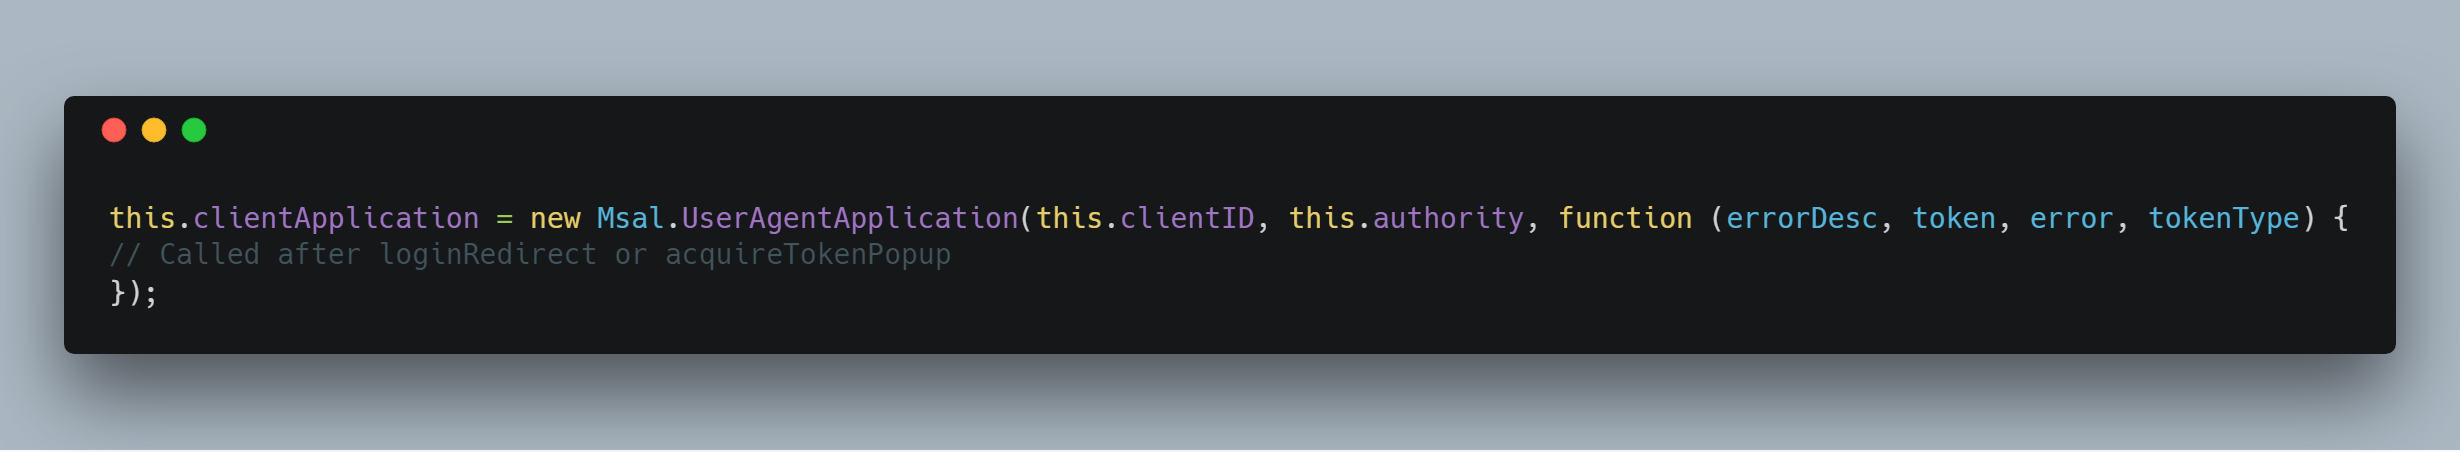 Set up the MSAL client to be used for the auth process, passing it clientID (which is the application id of your Azure B2C application), and the authority which is a url Microsoft assigns your Azure B2C application.